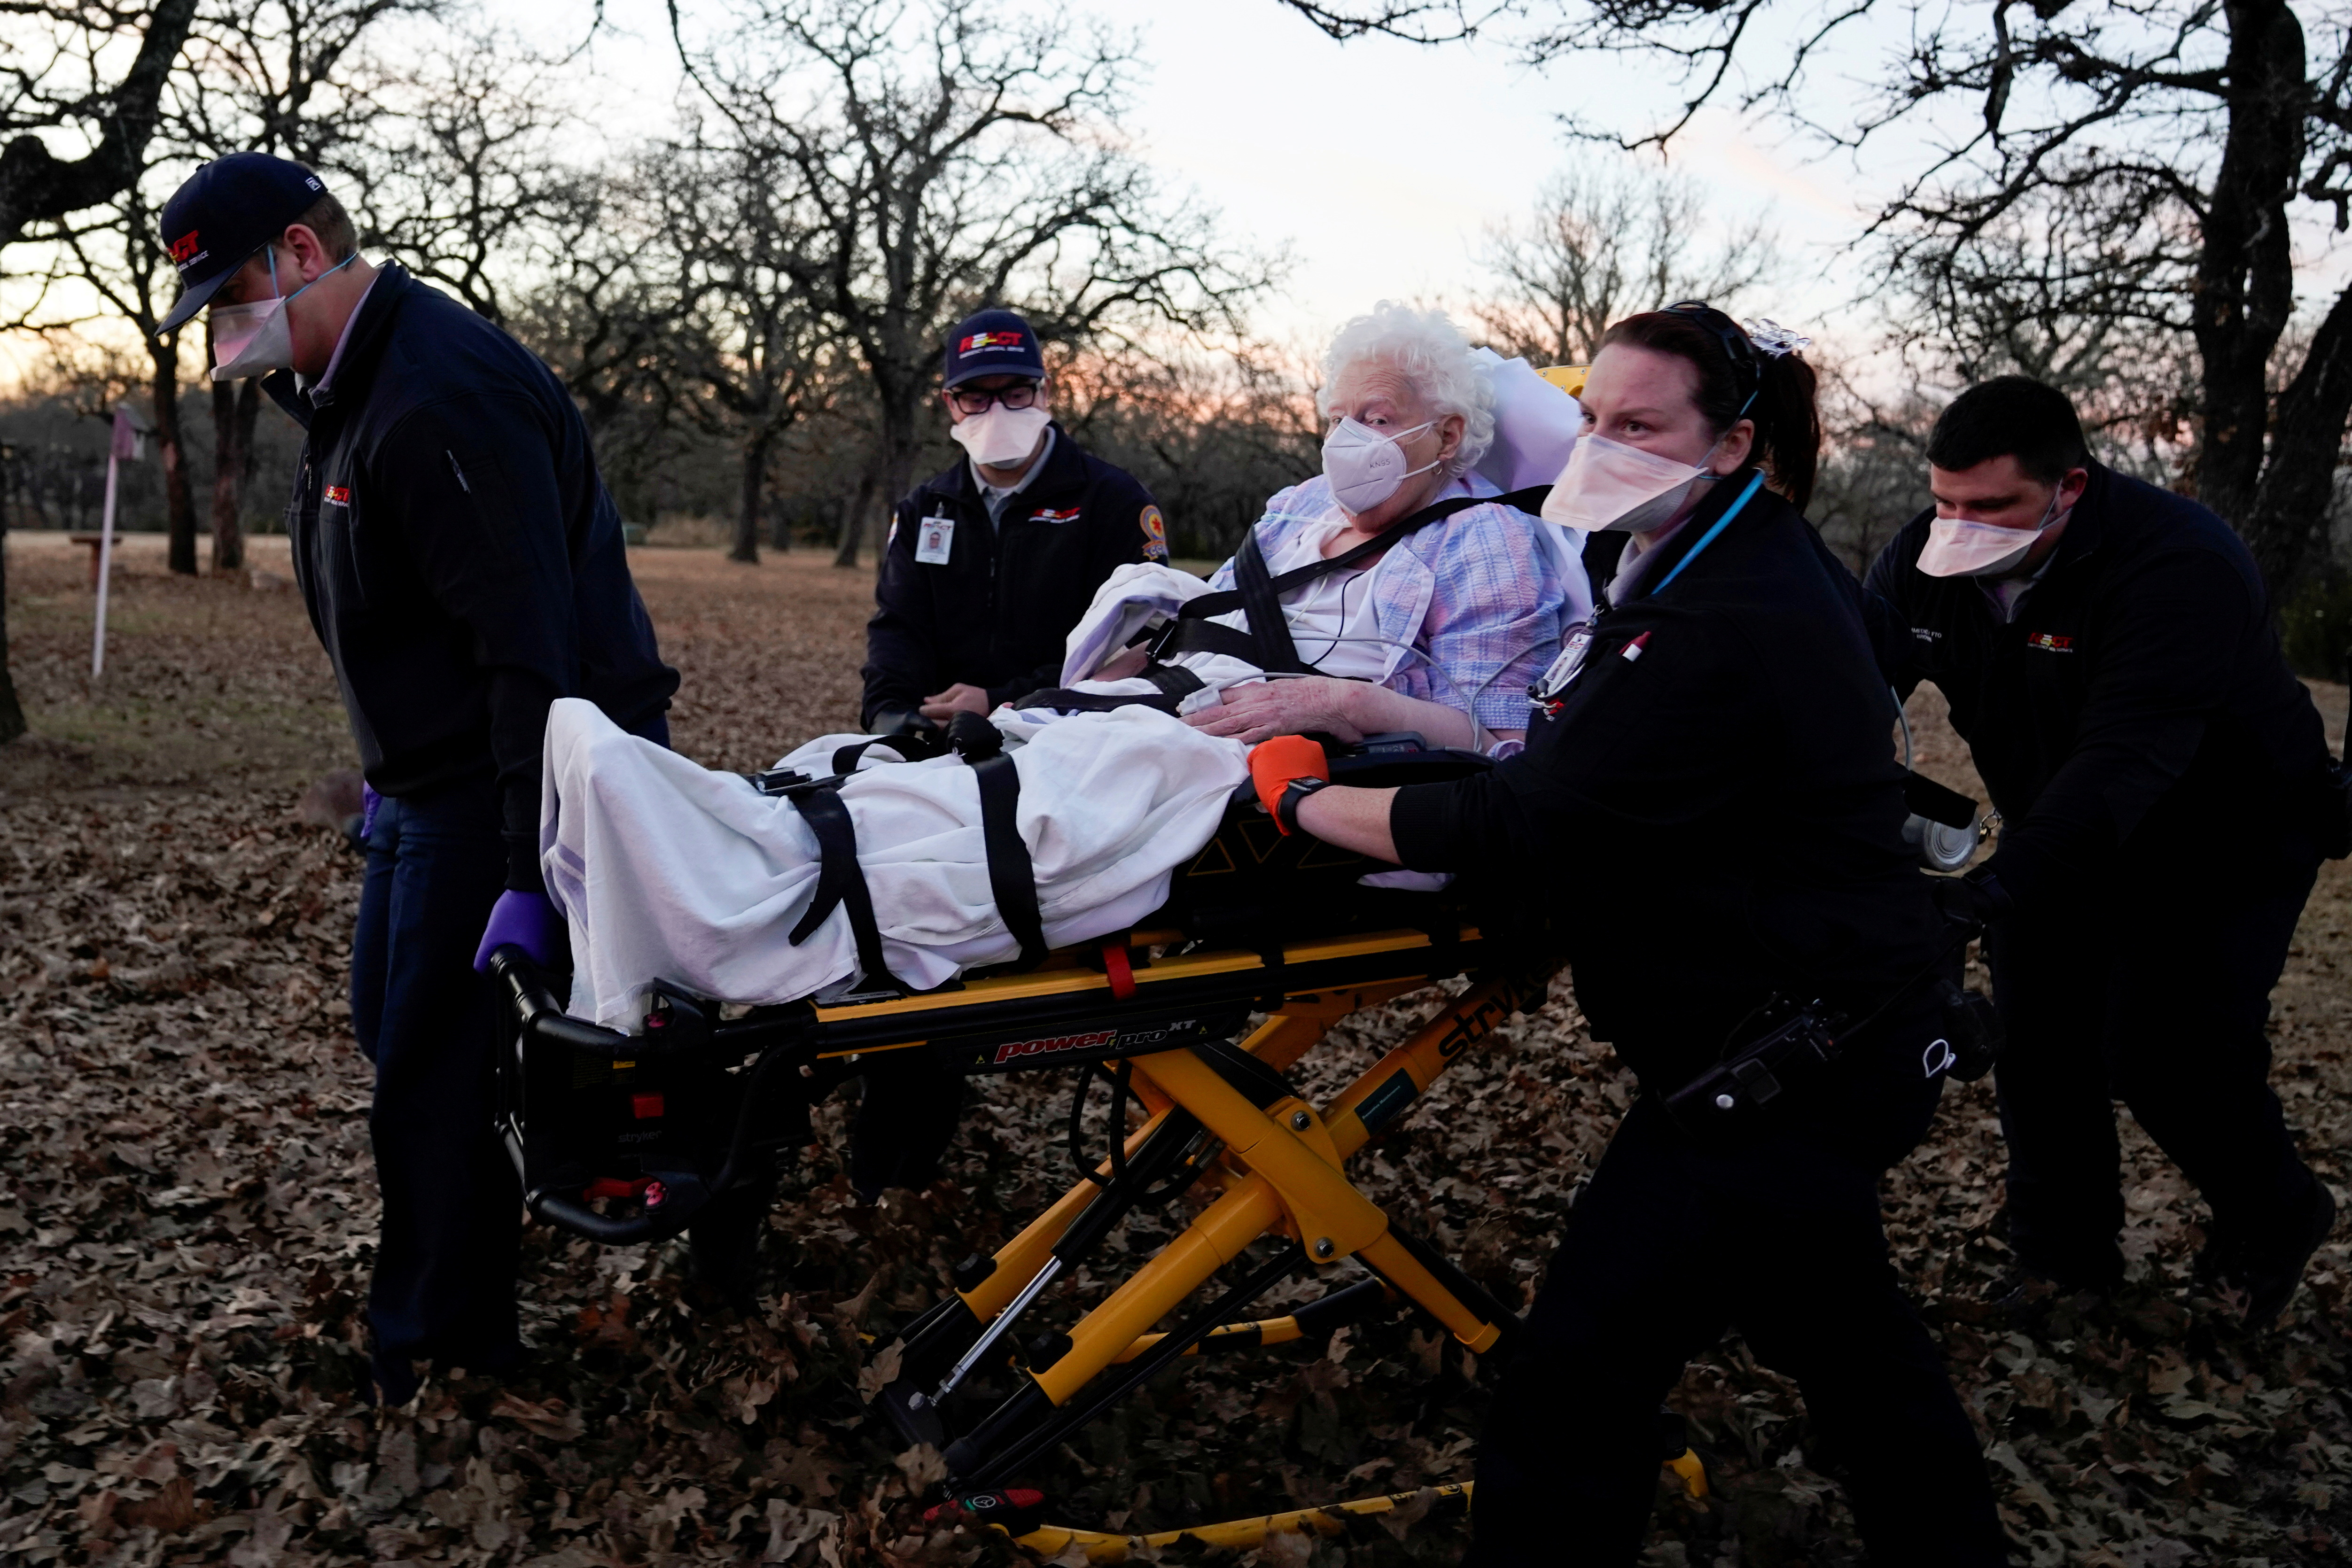 REACT EMS paramedics prepare to transport an 87-yearold woman who had been exposed to the coronavirus disease (COVID-19) and was experiencing symptoms in Meeker, Oklahoma, U.S. December 20, 2020. REUTERS/Nick Oxford